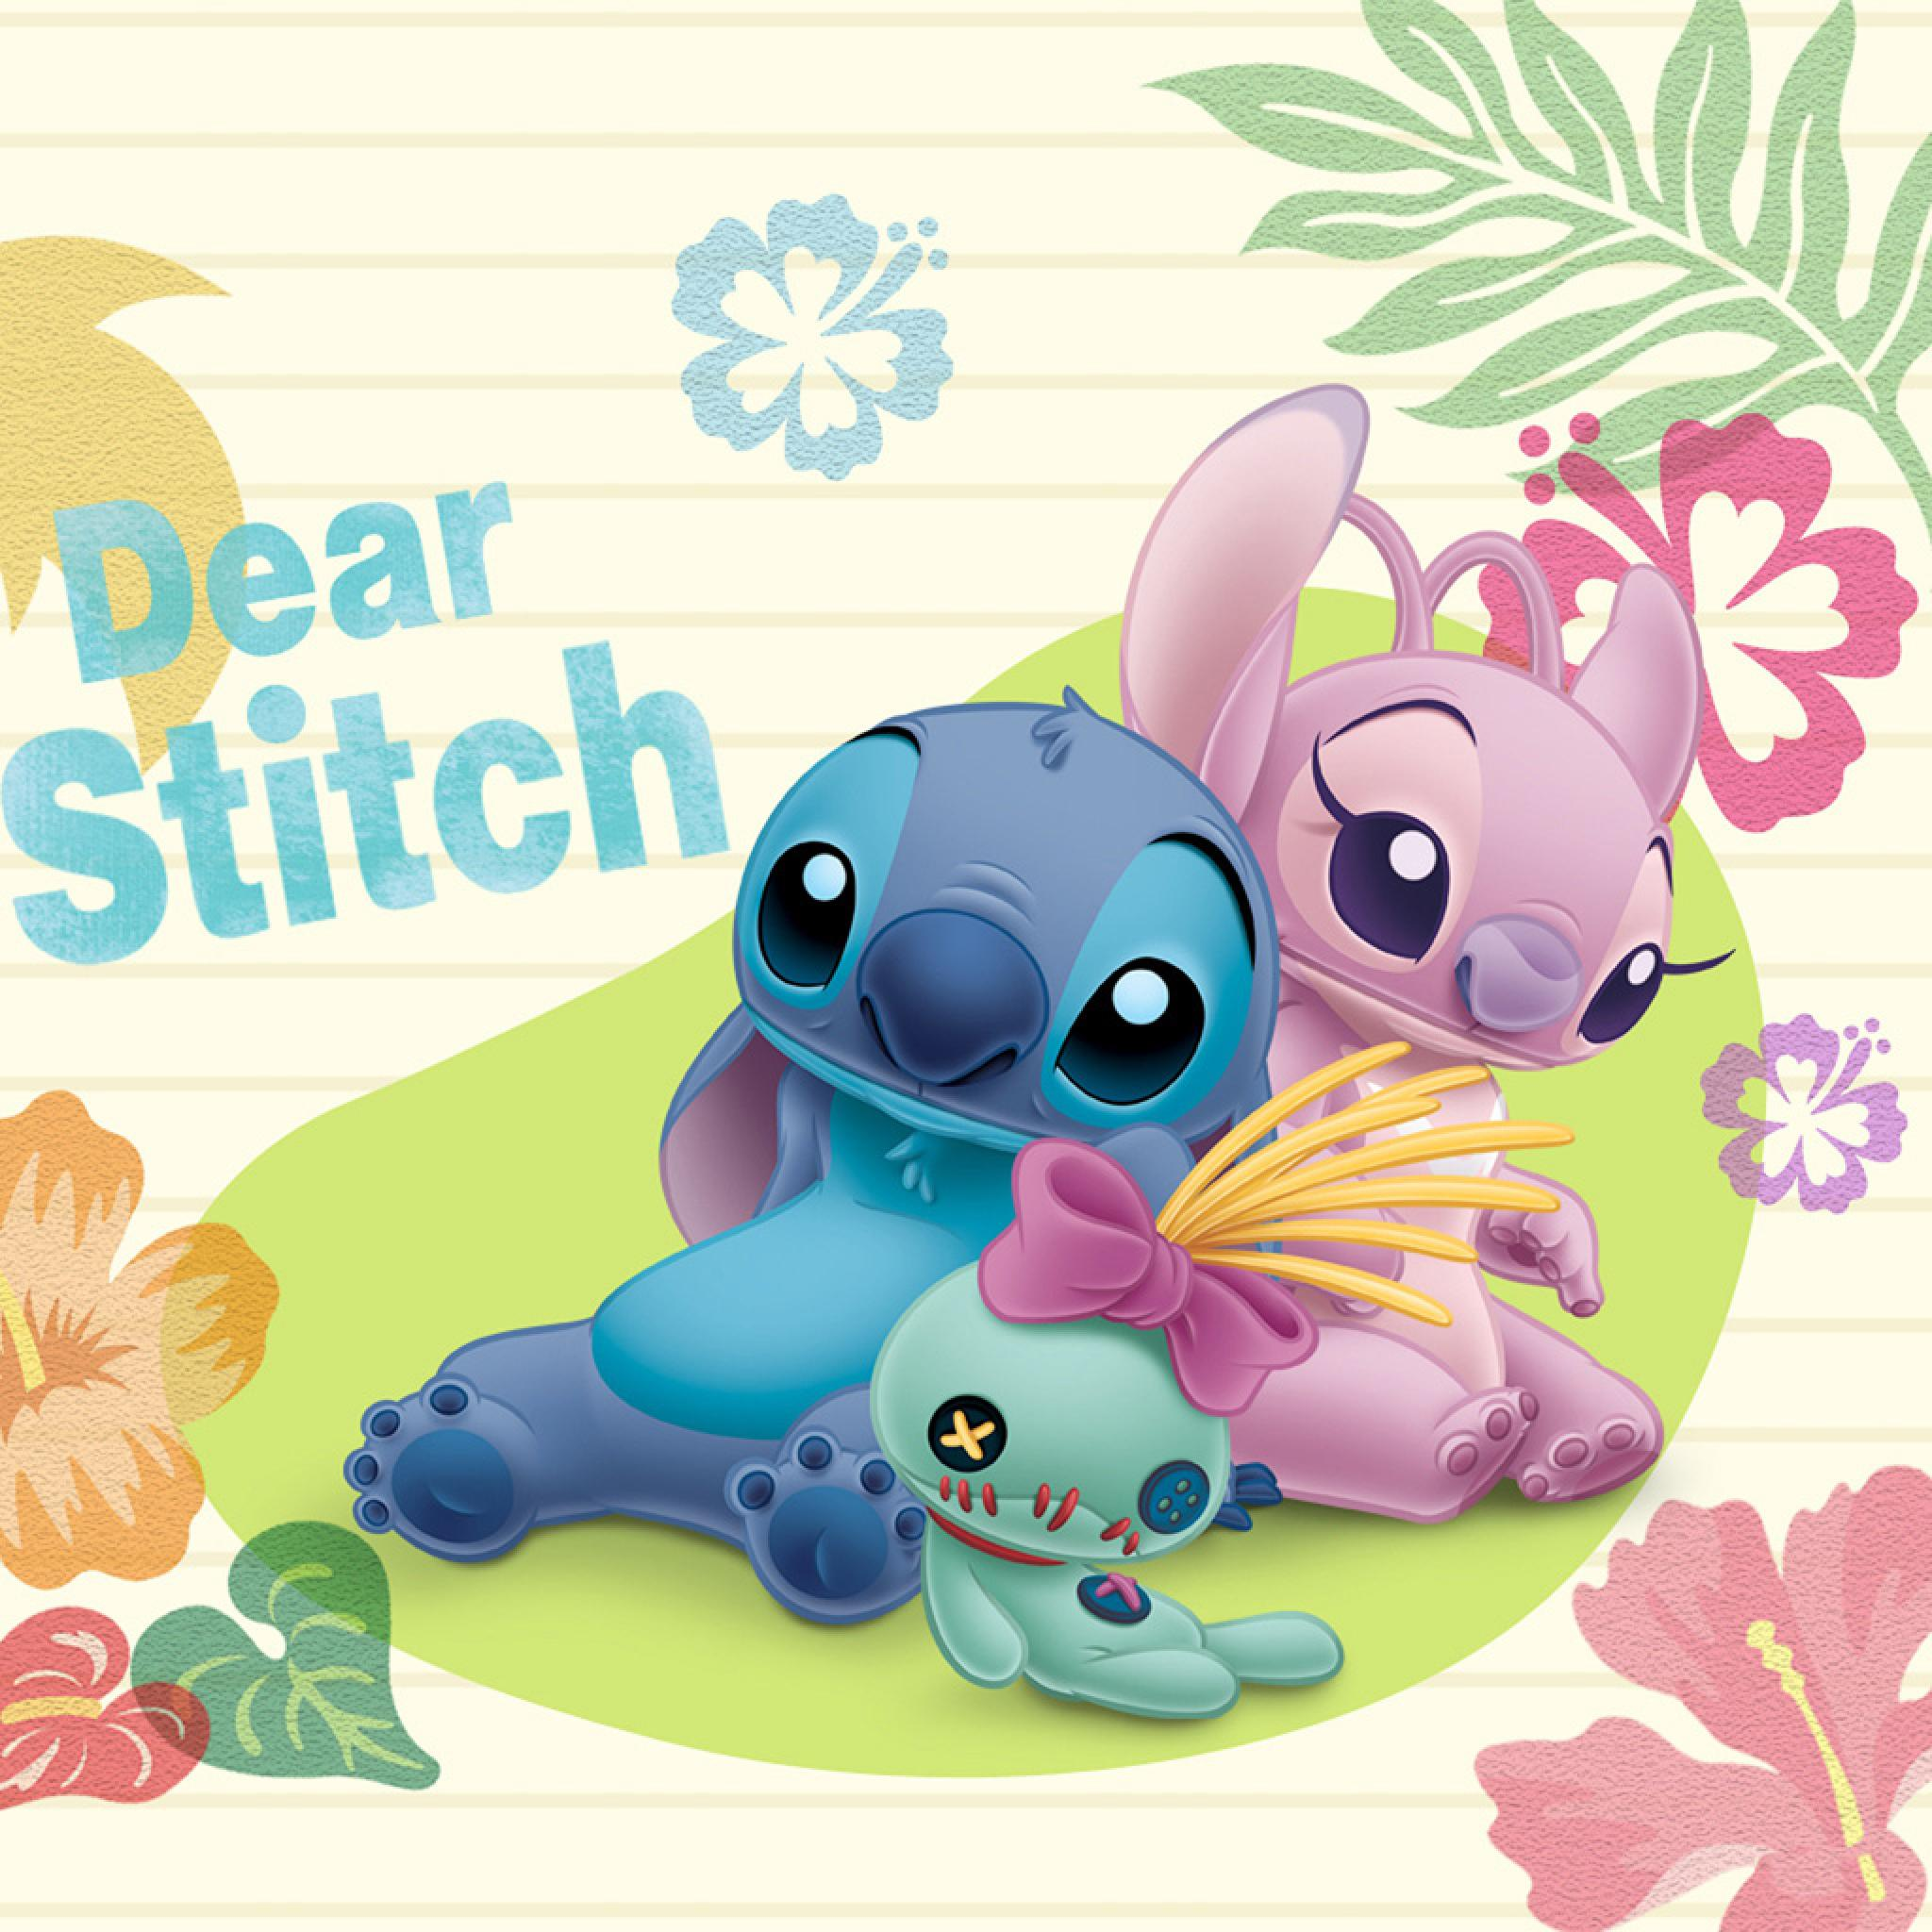 Cute Wallpapers Stitch Girl